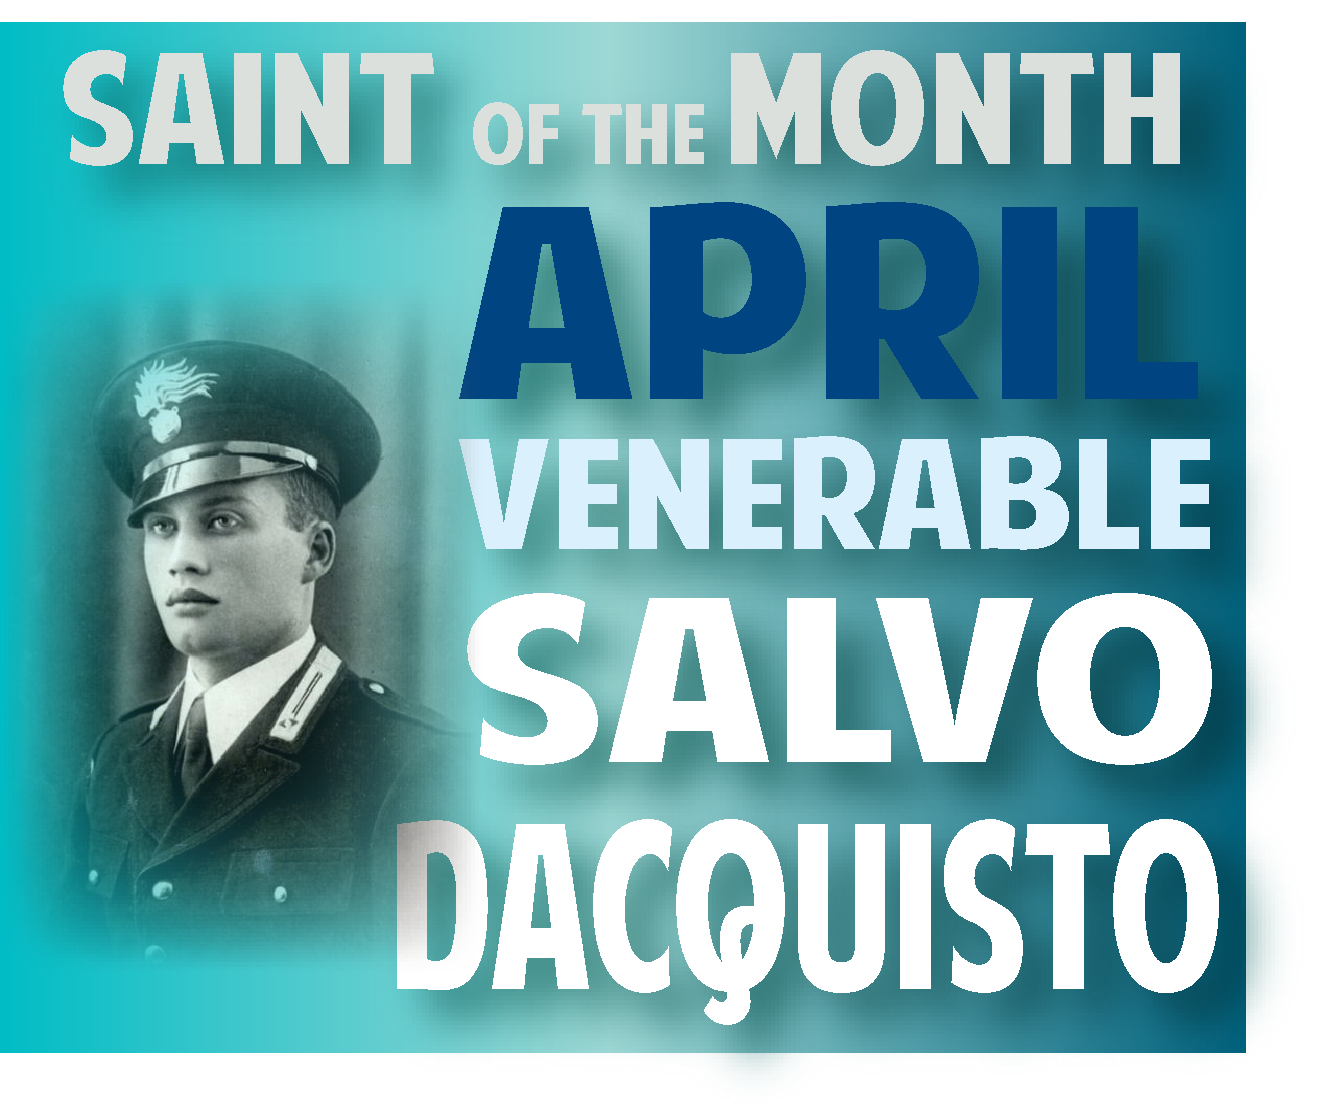 Saint of MonthSalvo